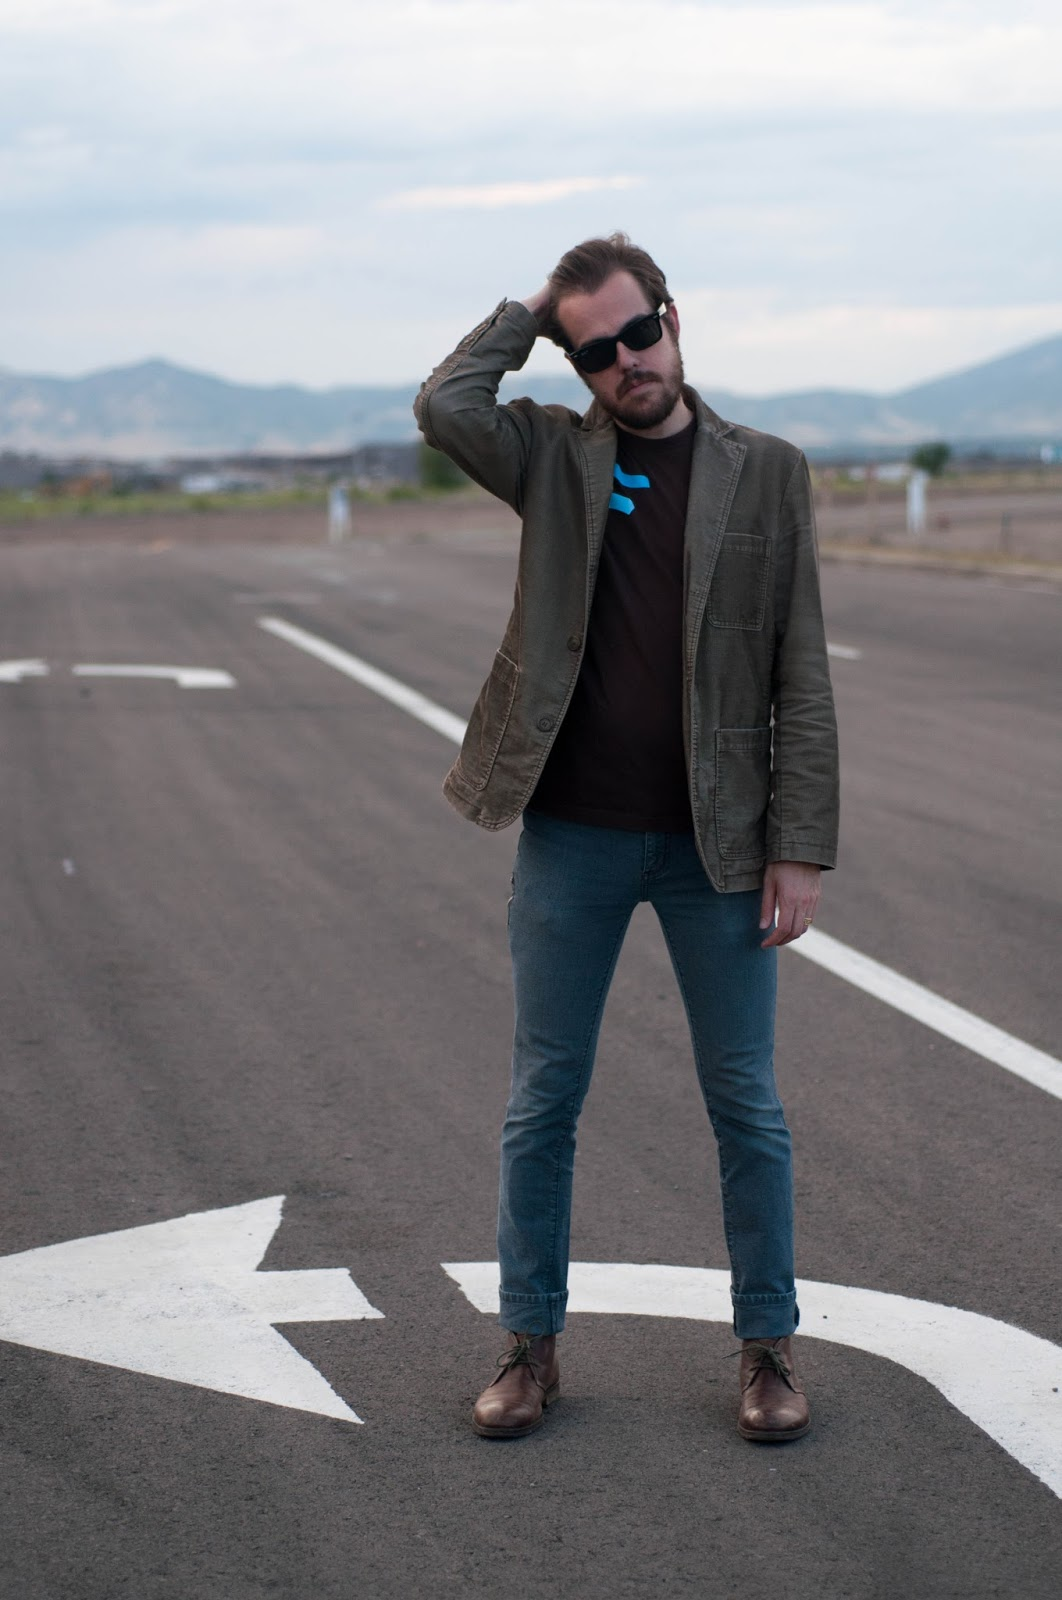 ootd, mens fashion, mens style, gordon rush boots, ray ban sunglasses, corduroy jacket